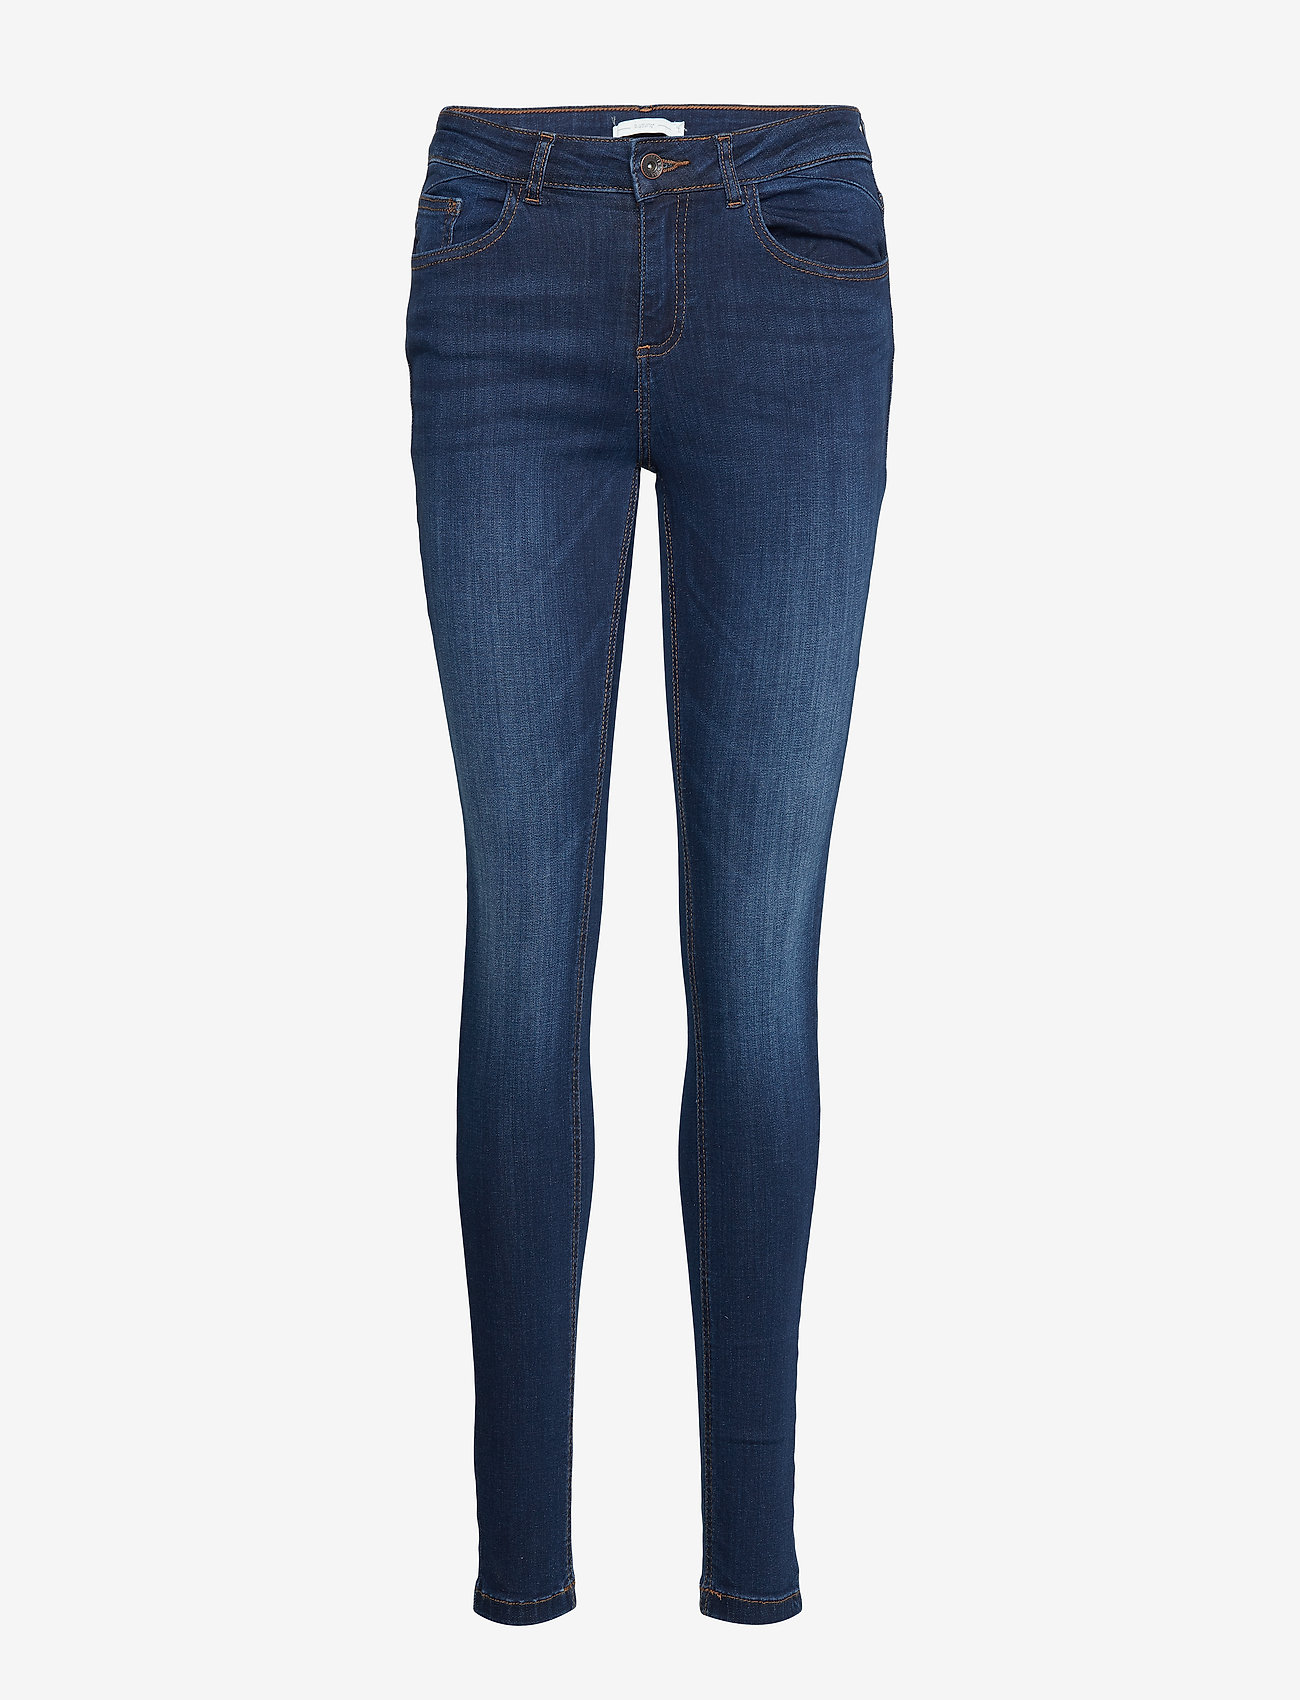 b.young - Lola Luni jeans - 5 pocket - skinny jeans - dark ink - 0